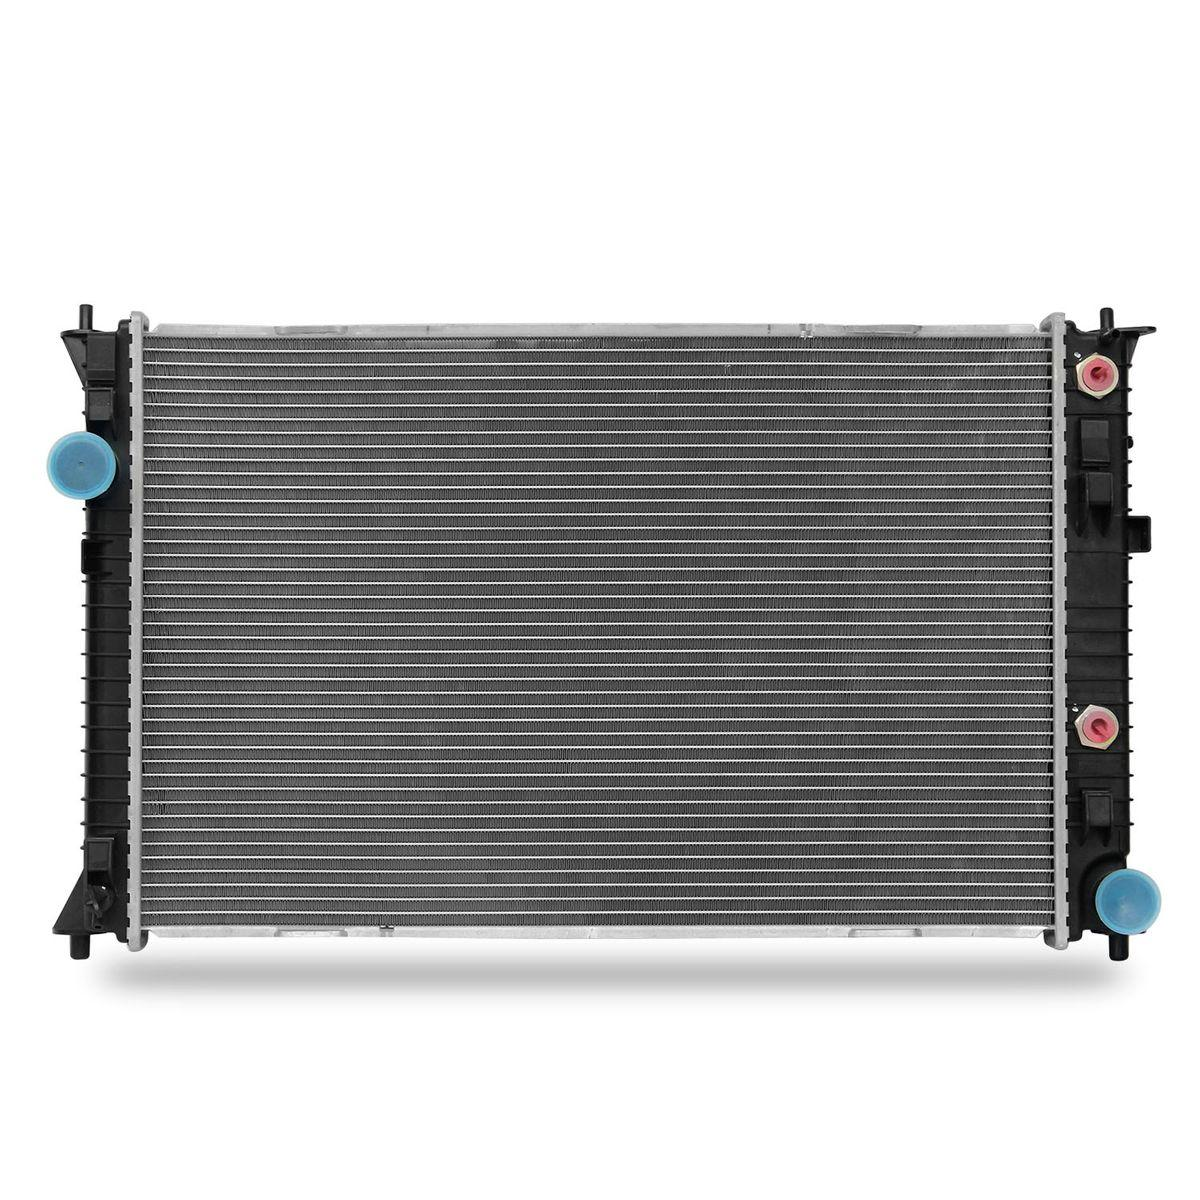 2006 ford fusion v6 radiator parts 2006 tractor engine 2006 ford fusion  cooling system diagram 2010 ford fusion cooling system diagram